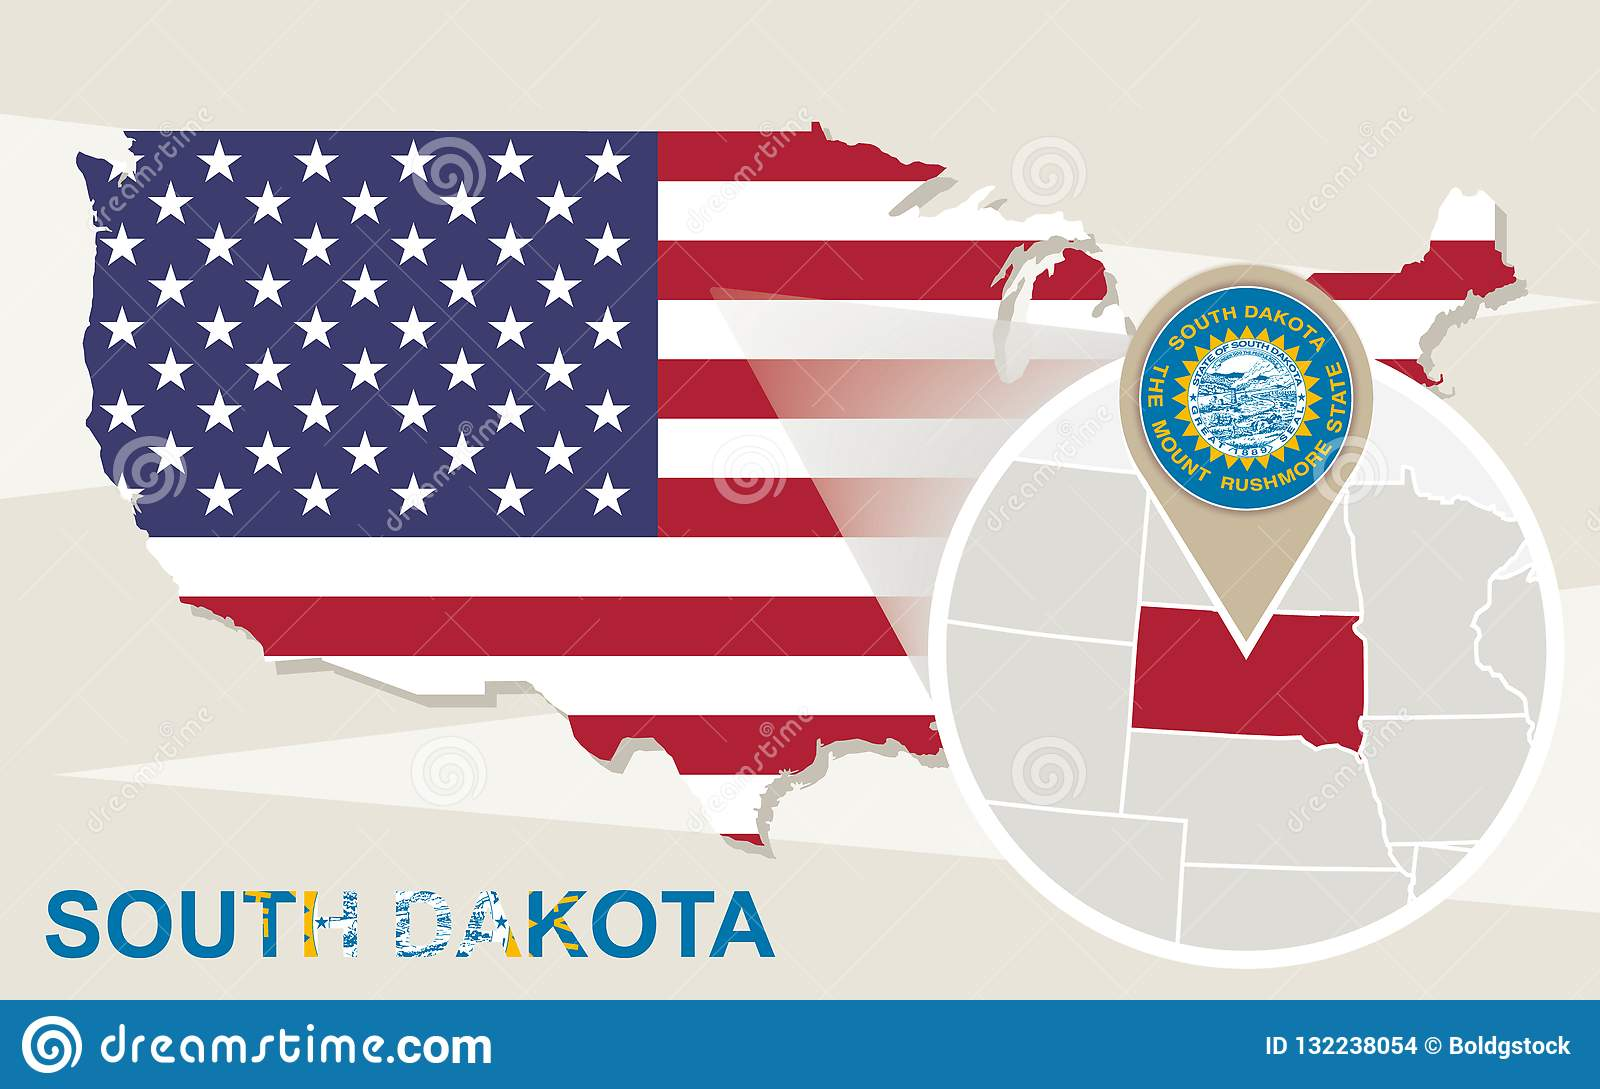 Usa Map With Magnified South Dakota State South Dakota Flag And